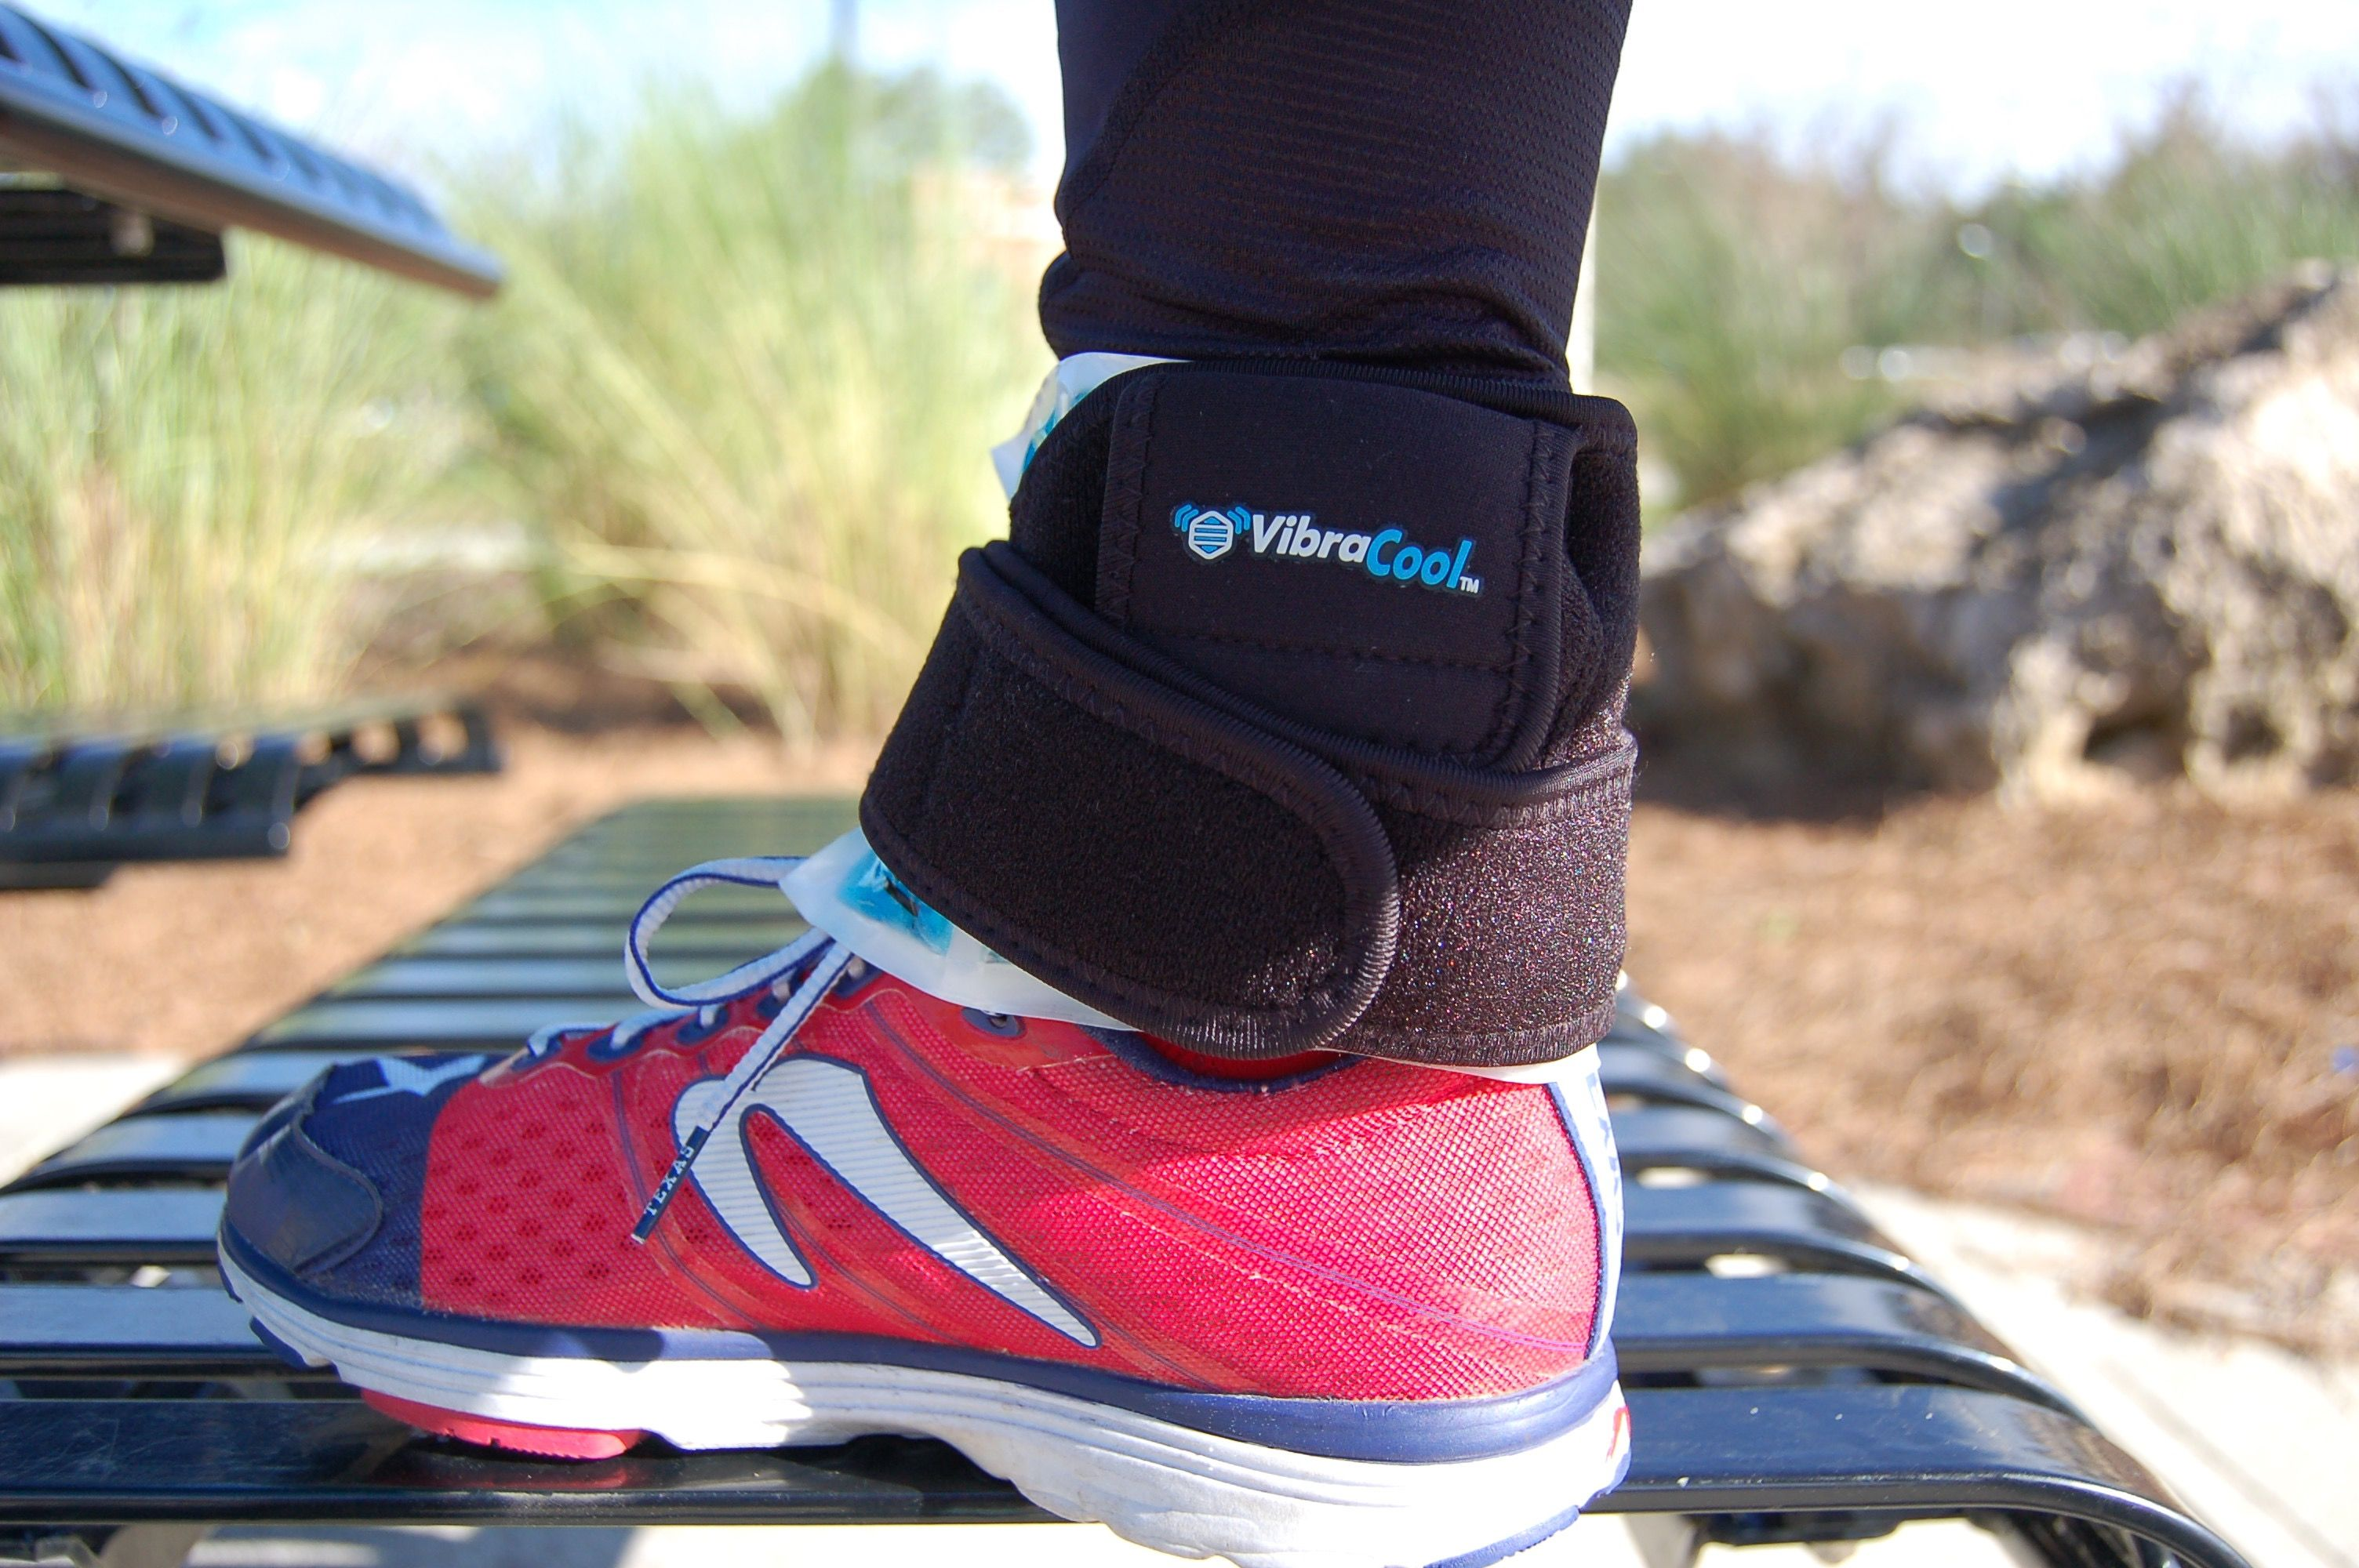 Sore ankles? VibraCool can offer simple, serious, drug free pain relief.